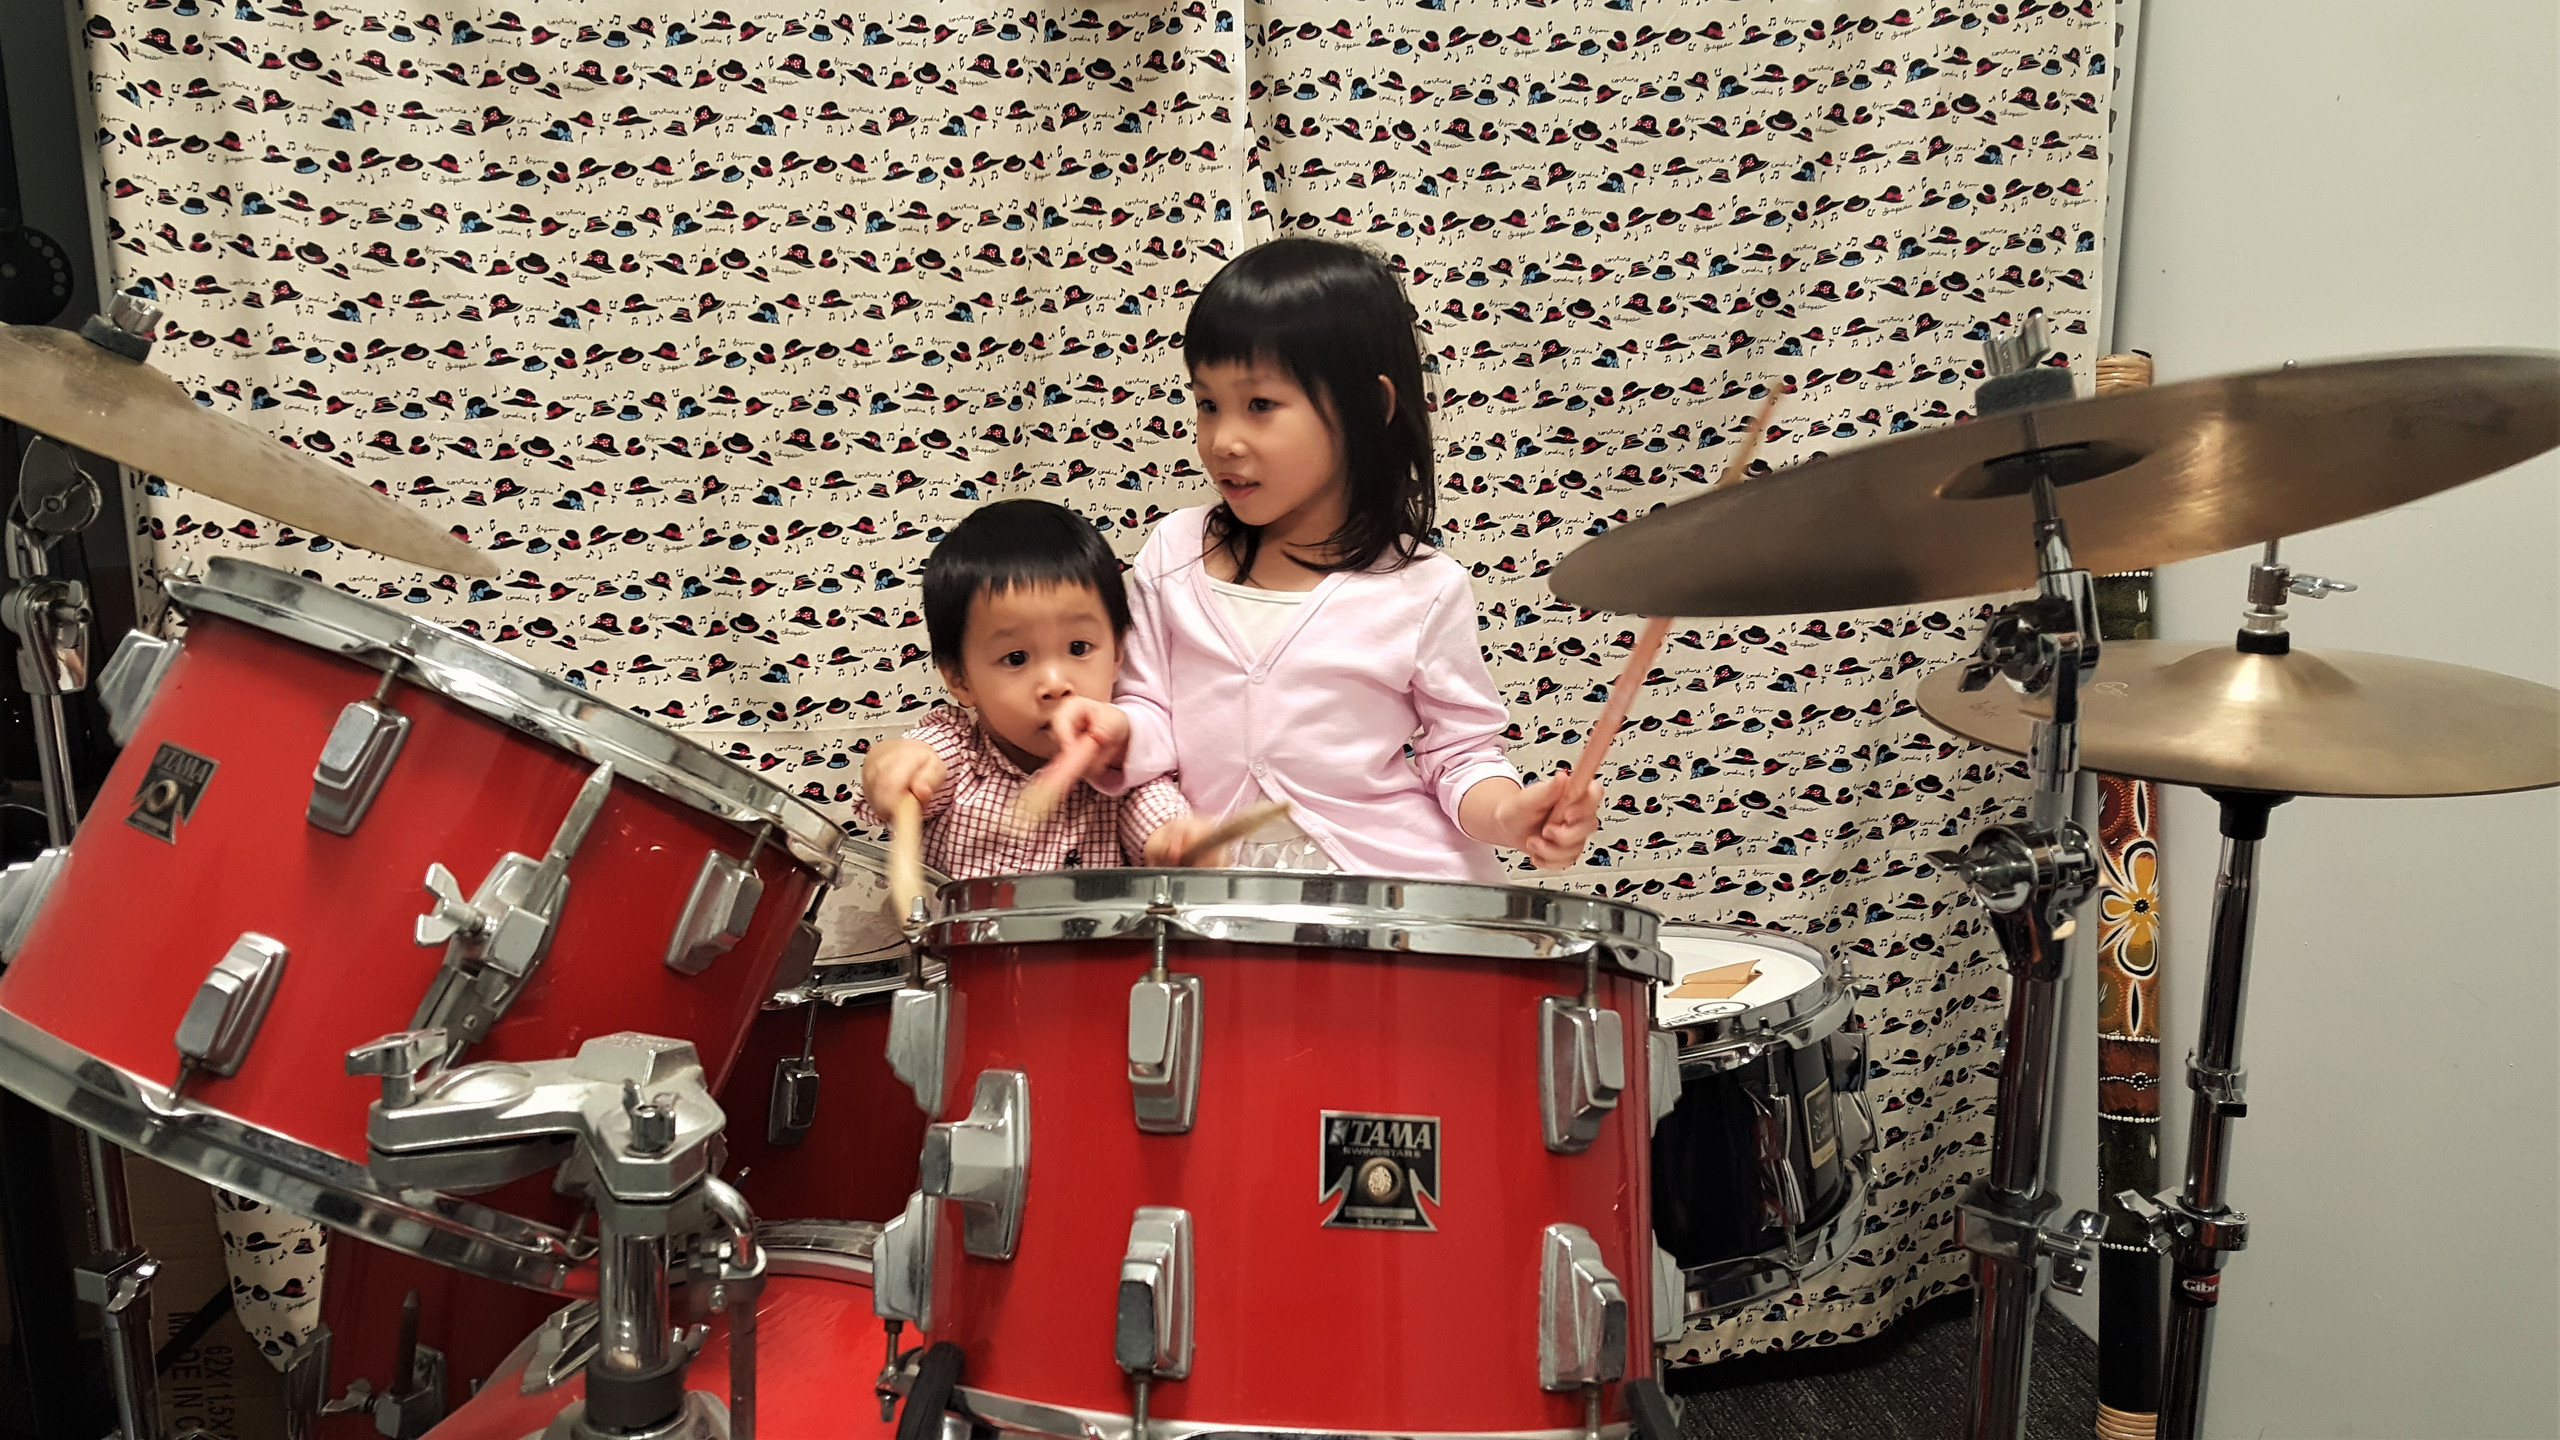 The lil' duo having fun on the drums